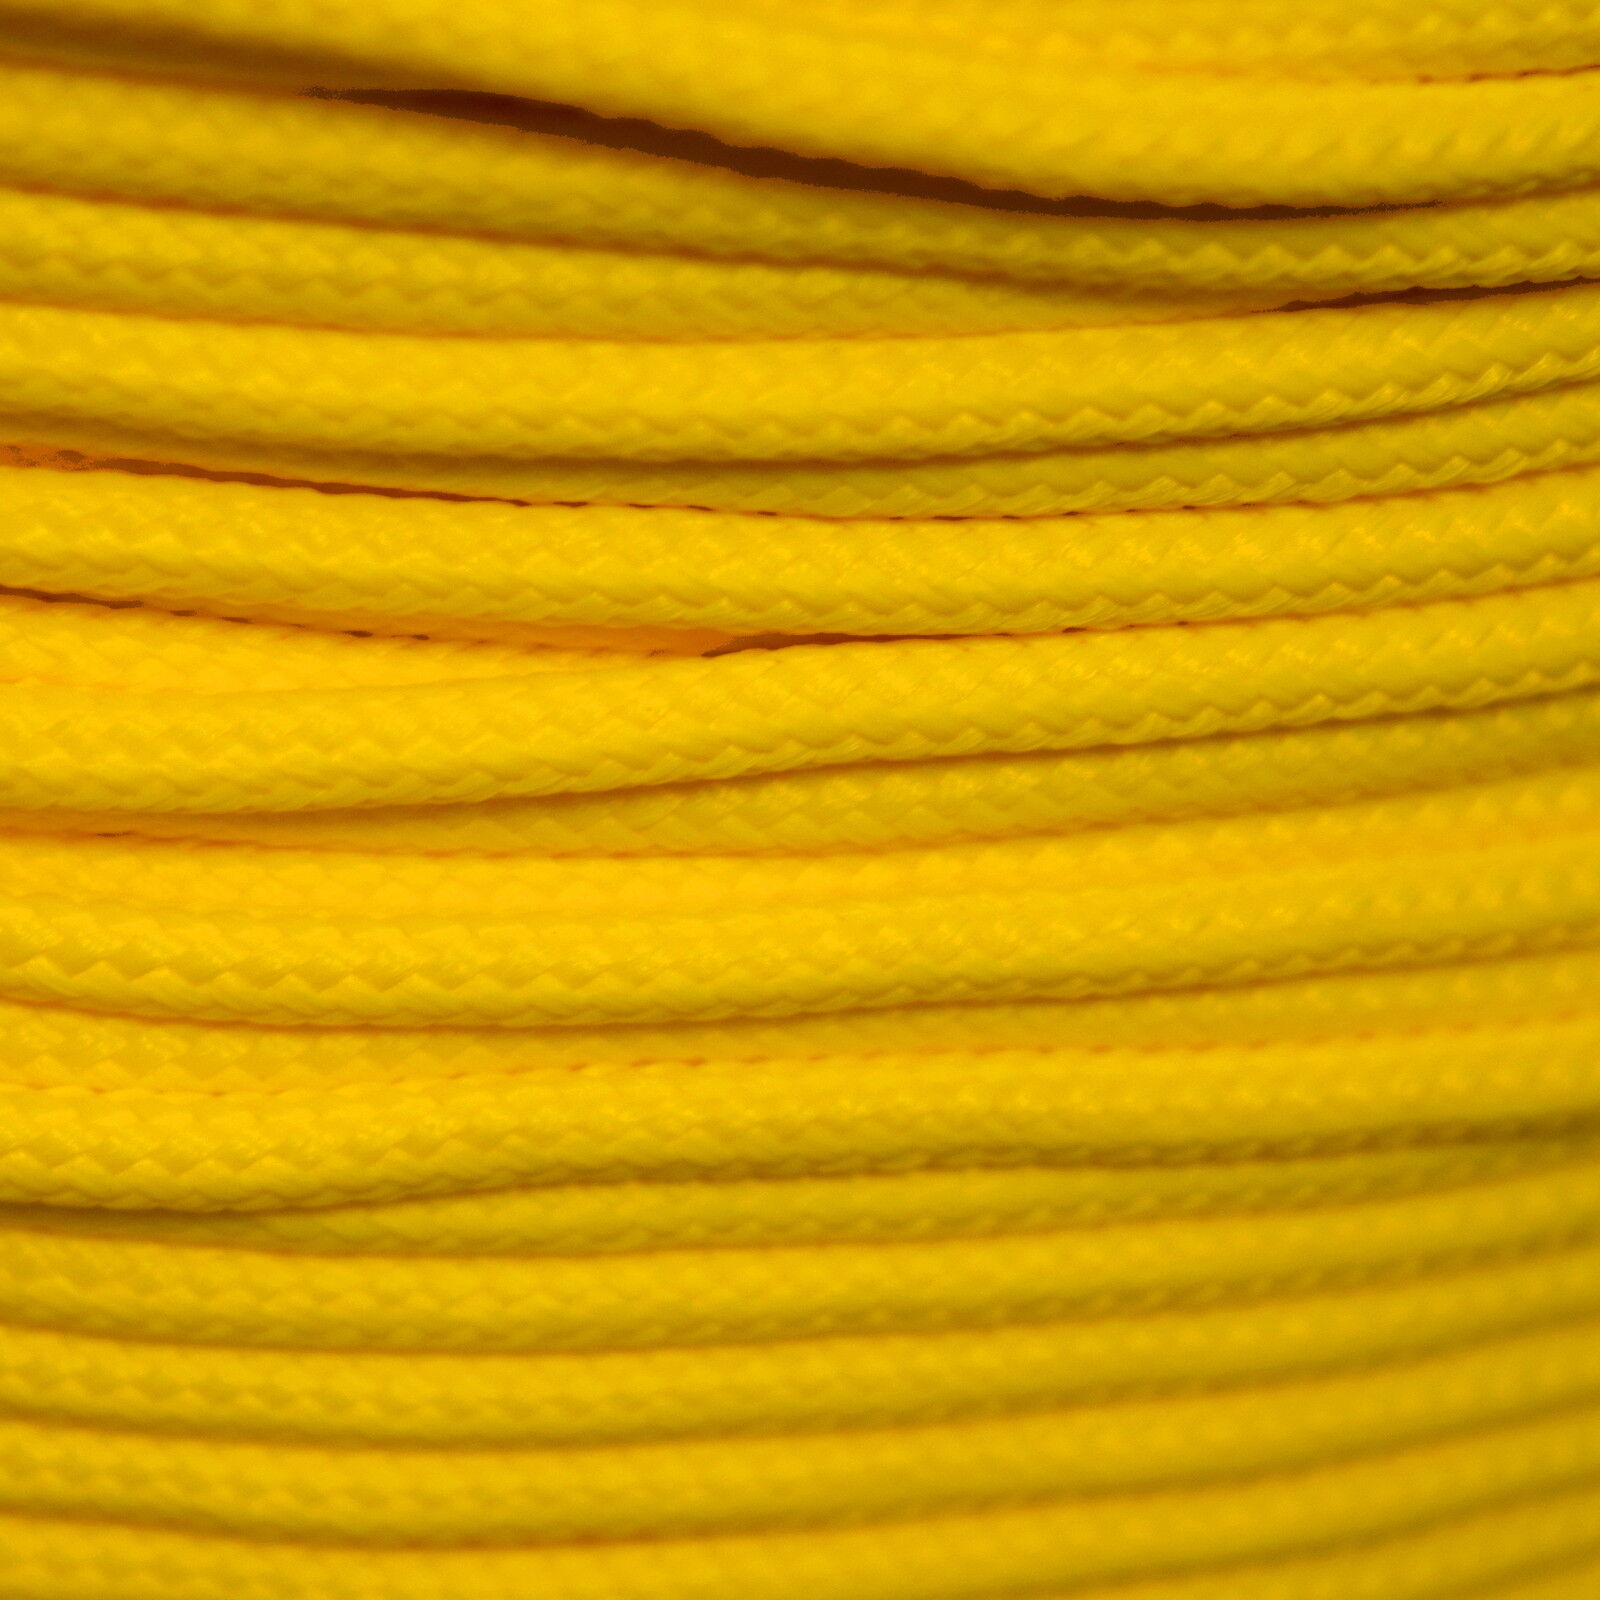 Polypropylene Rope Braided Cord Woven Twine Boating Camping Climbing - Yellow